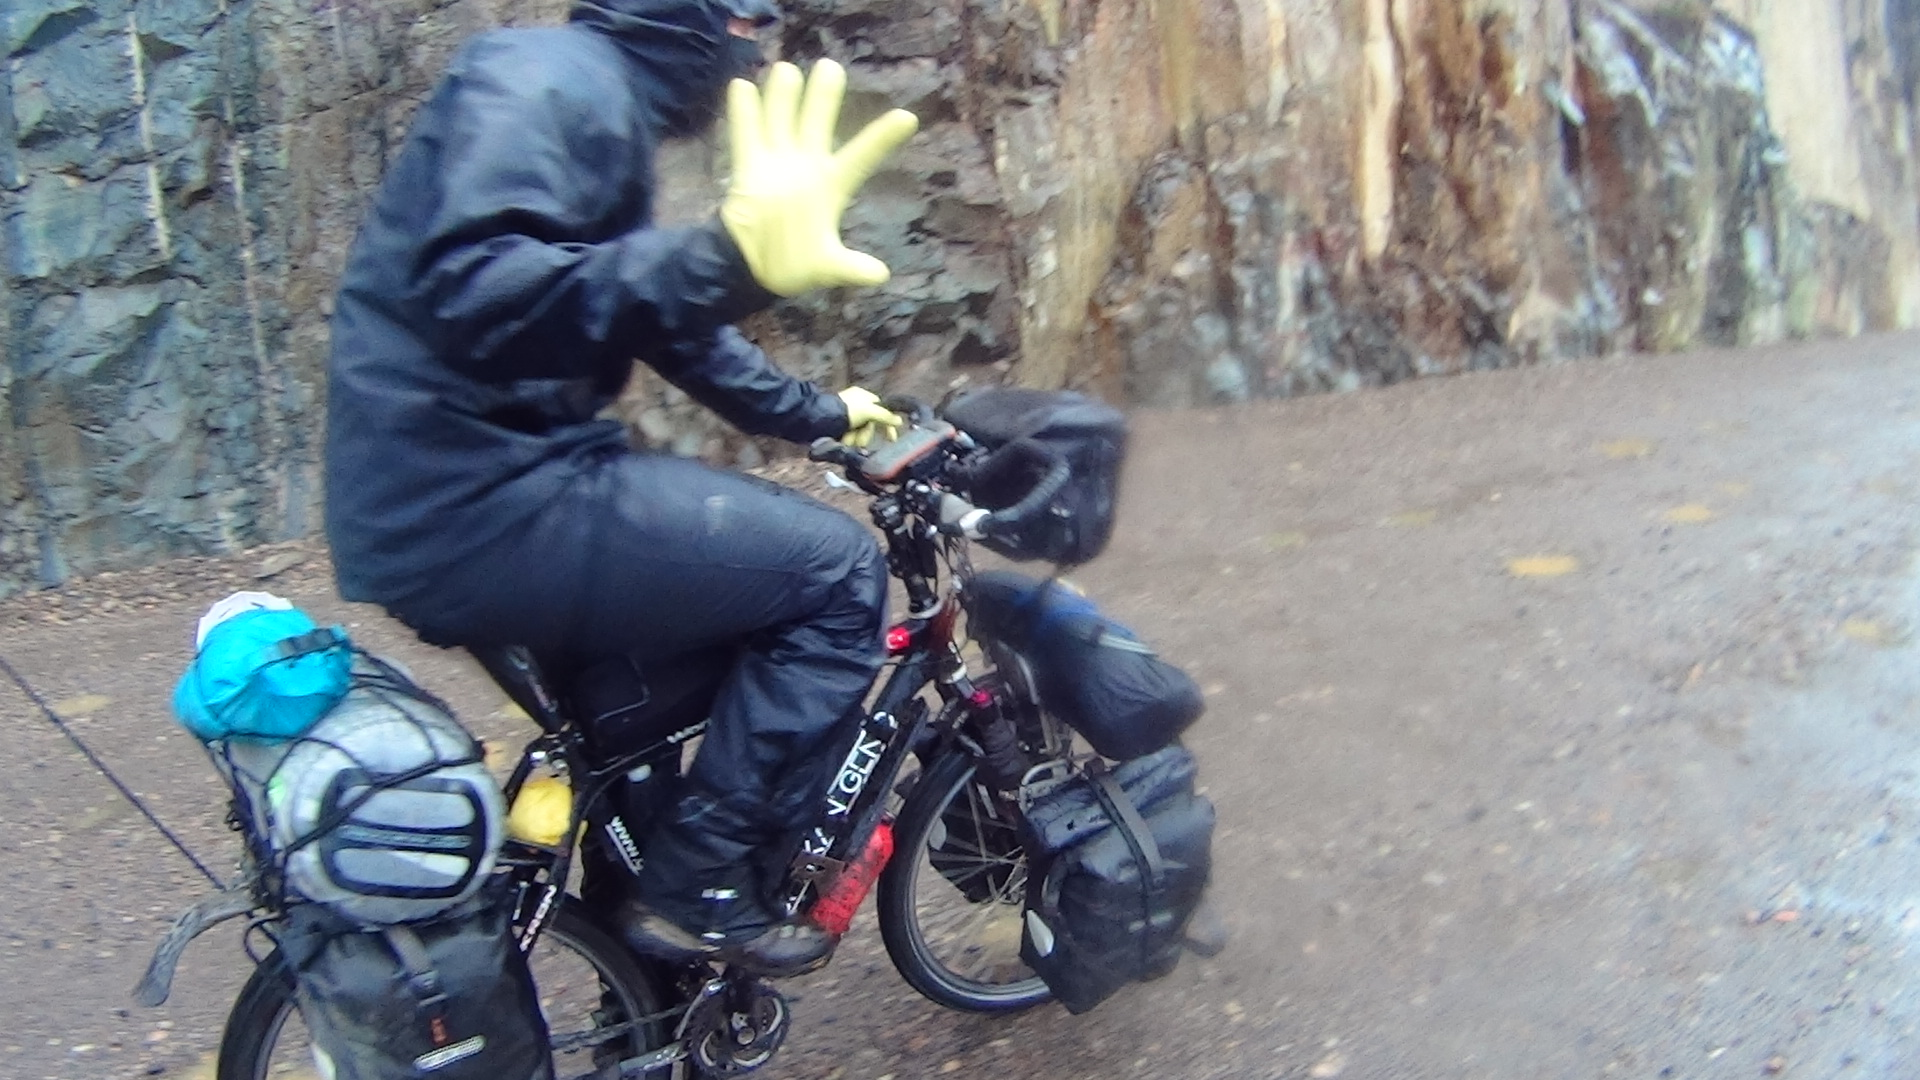 Yellow rubber gloves over inner gloves. Excellent for keeping hands dry. Why didn't I do that before? A bout of cold afternoon rain forces on full wet weather gear.